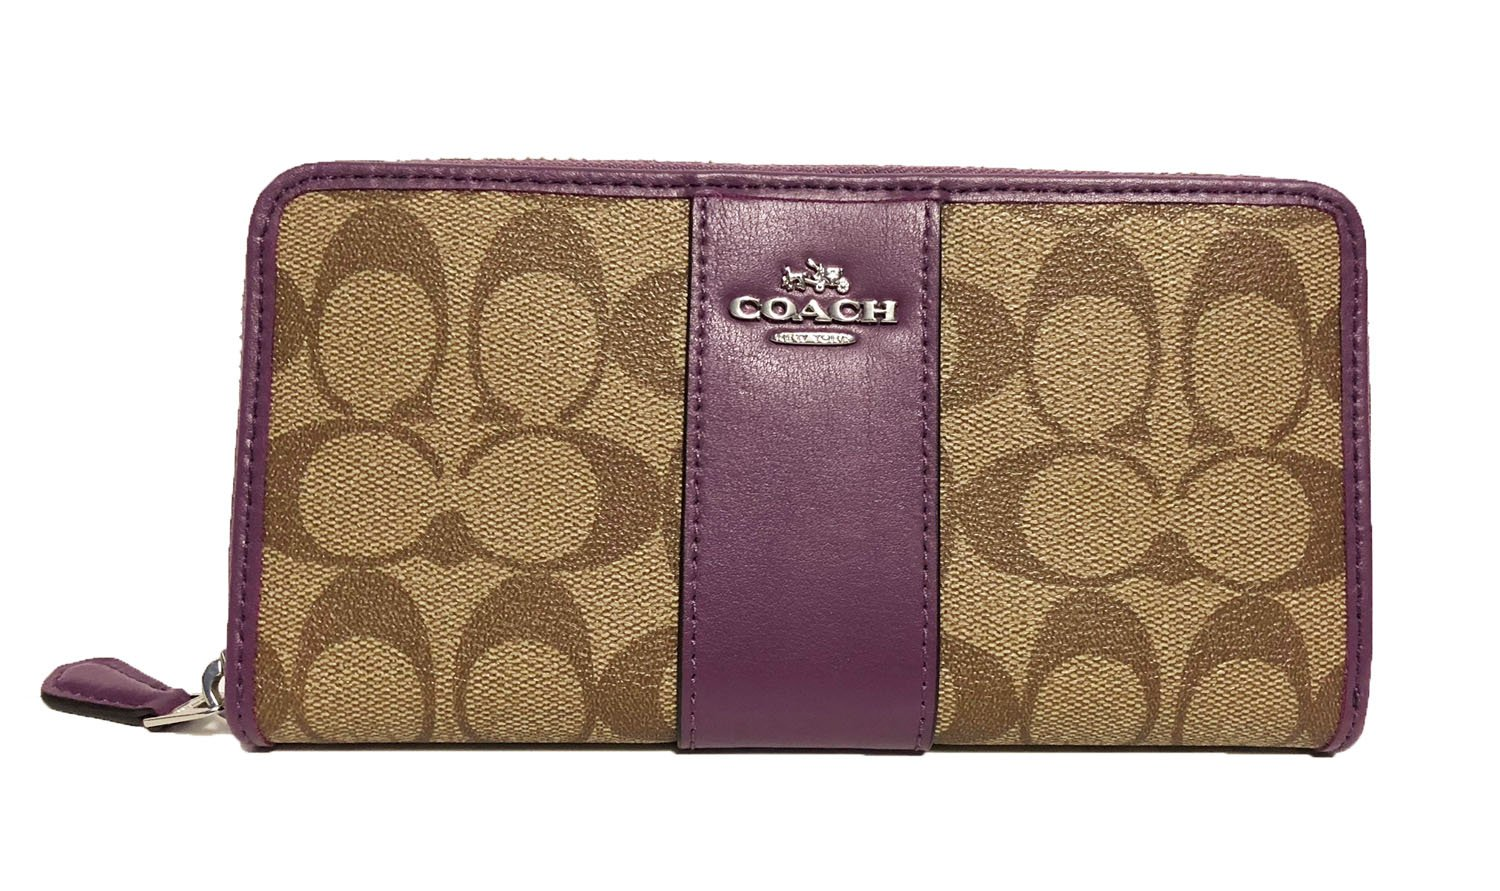 COACH ACCORDION ZIP WALLET IN SIGNATURE F54630 (SV/Kahki/Berry) by Coach